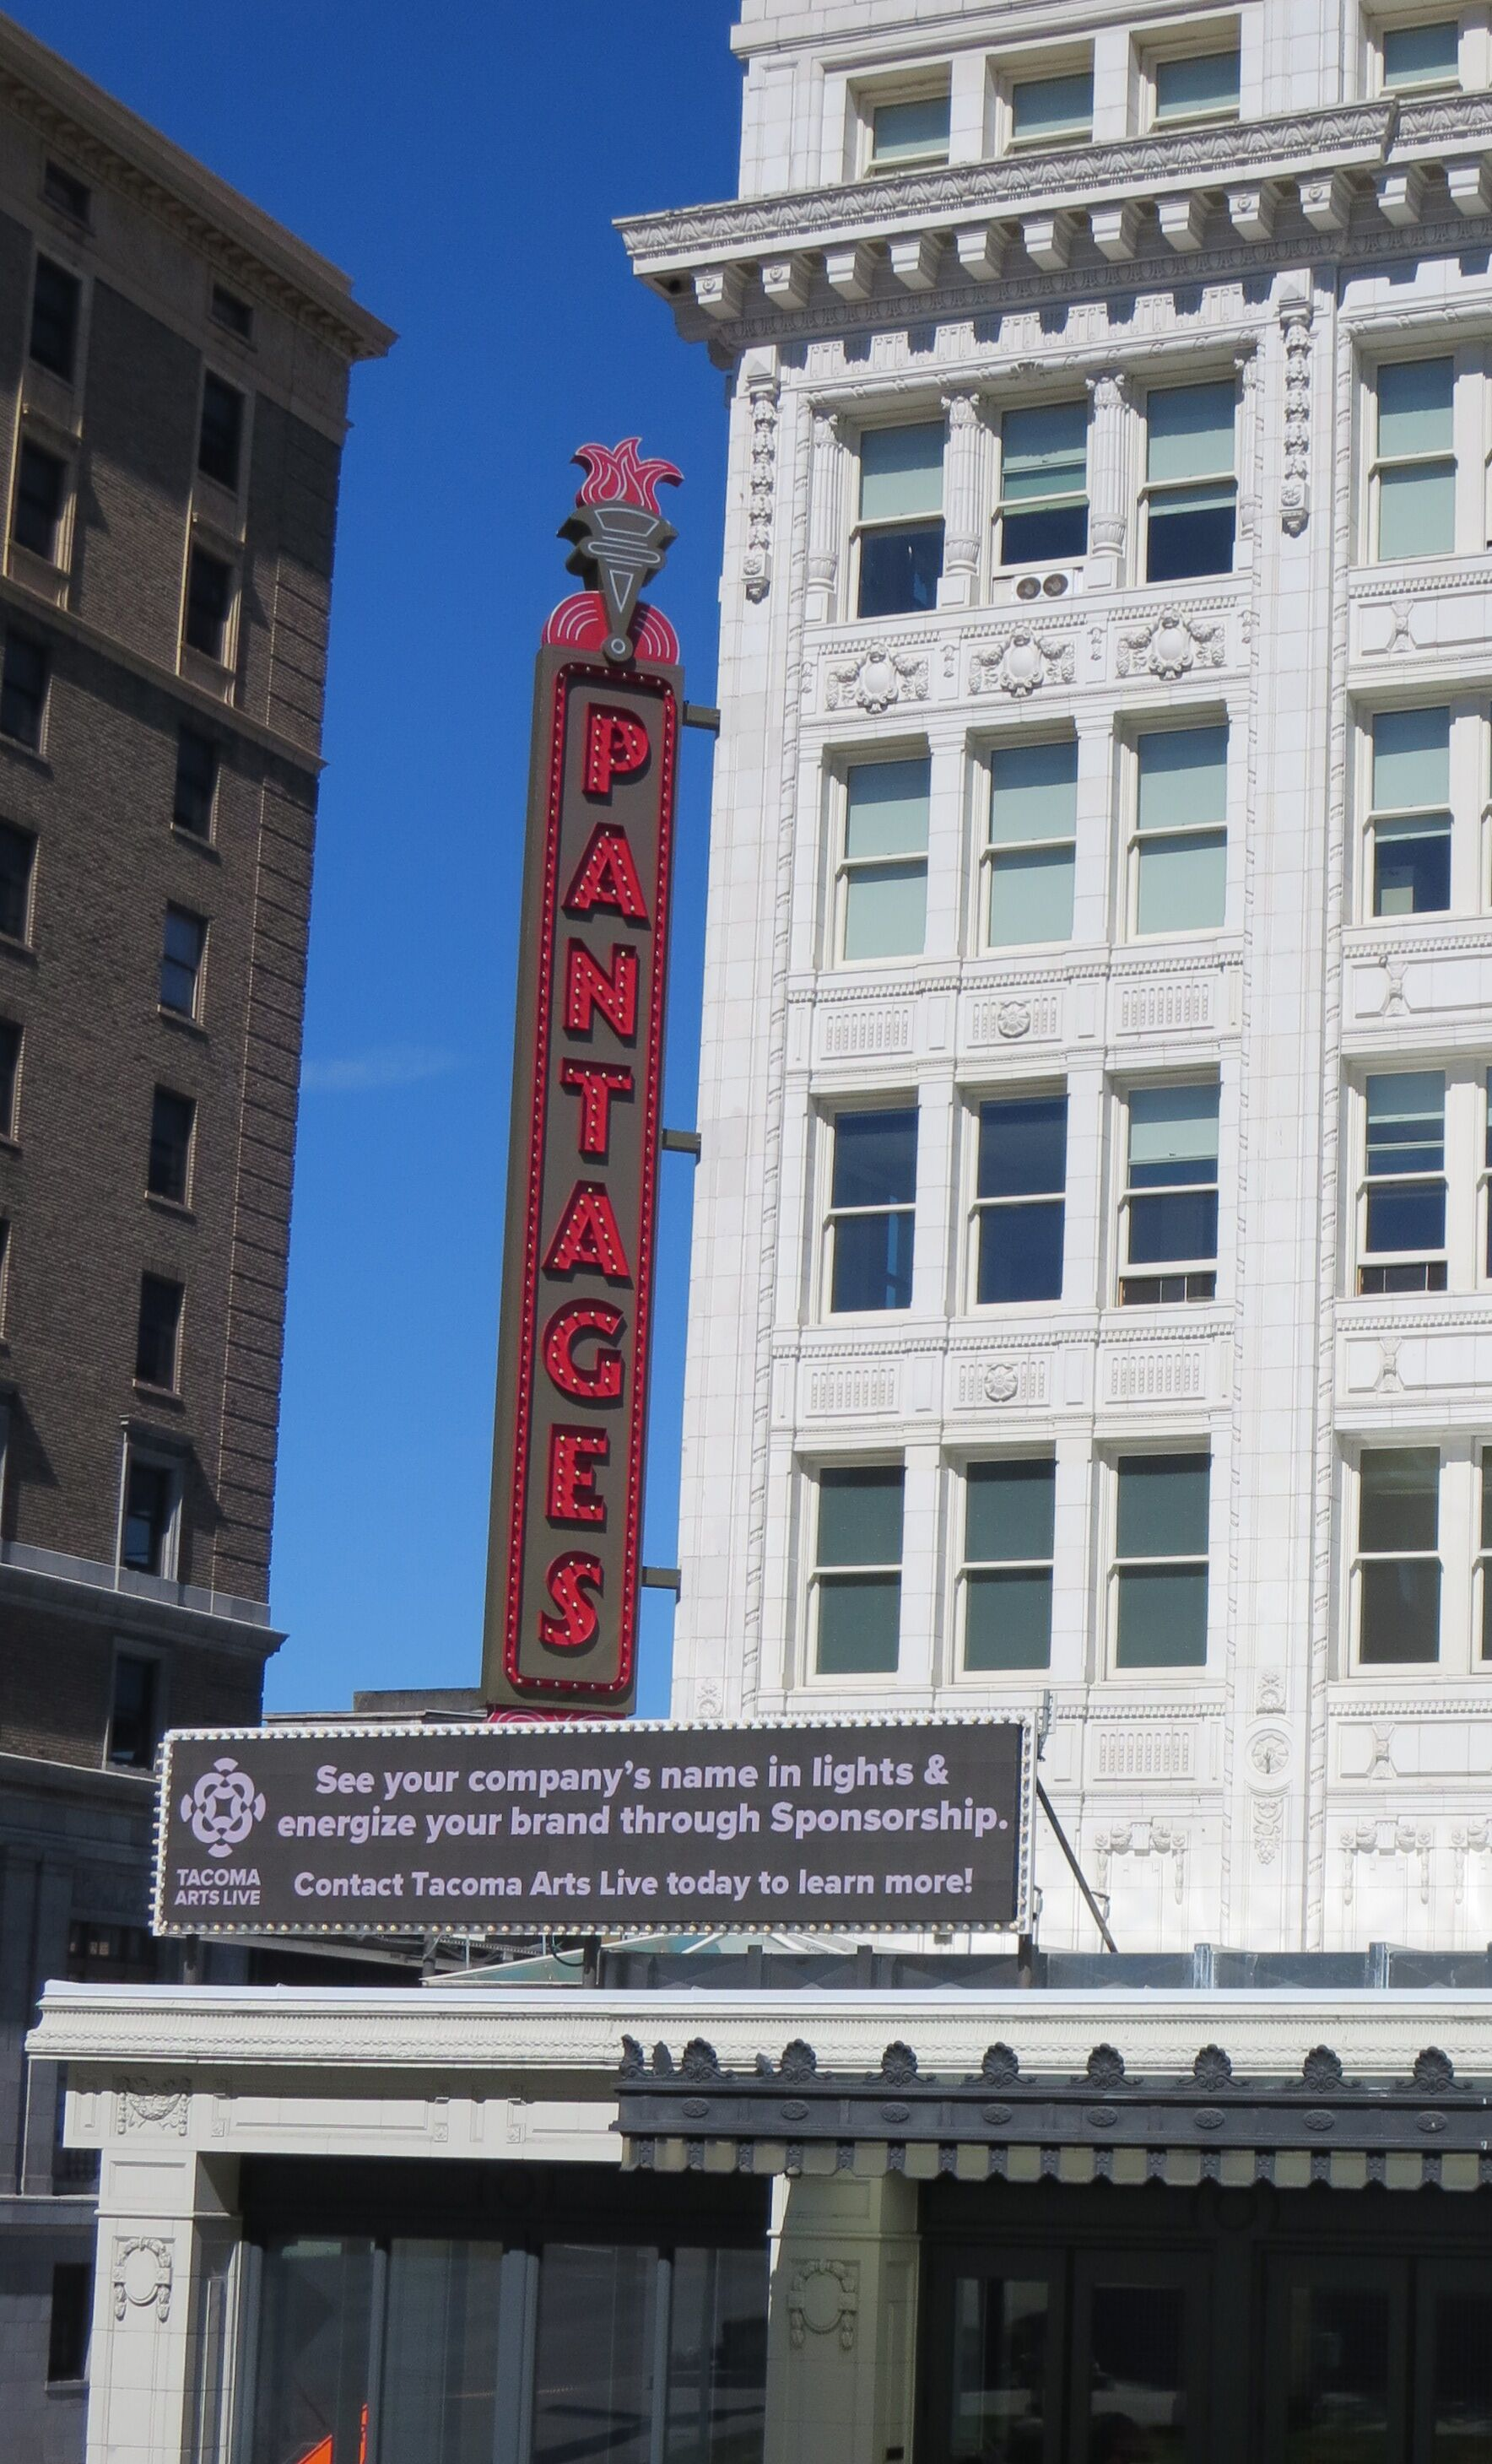 exterior image of the Pantages Theater